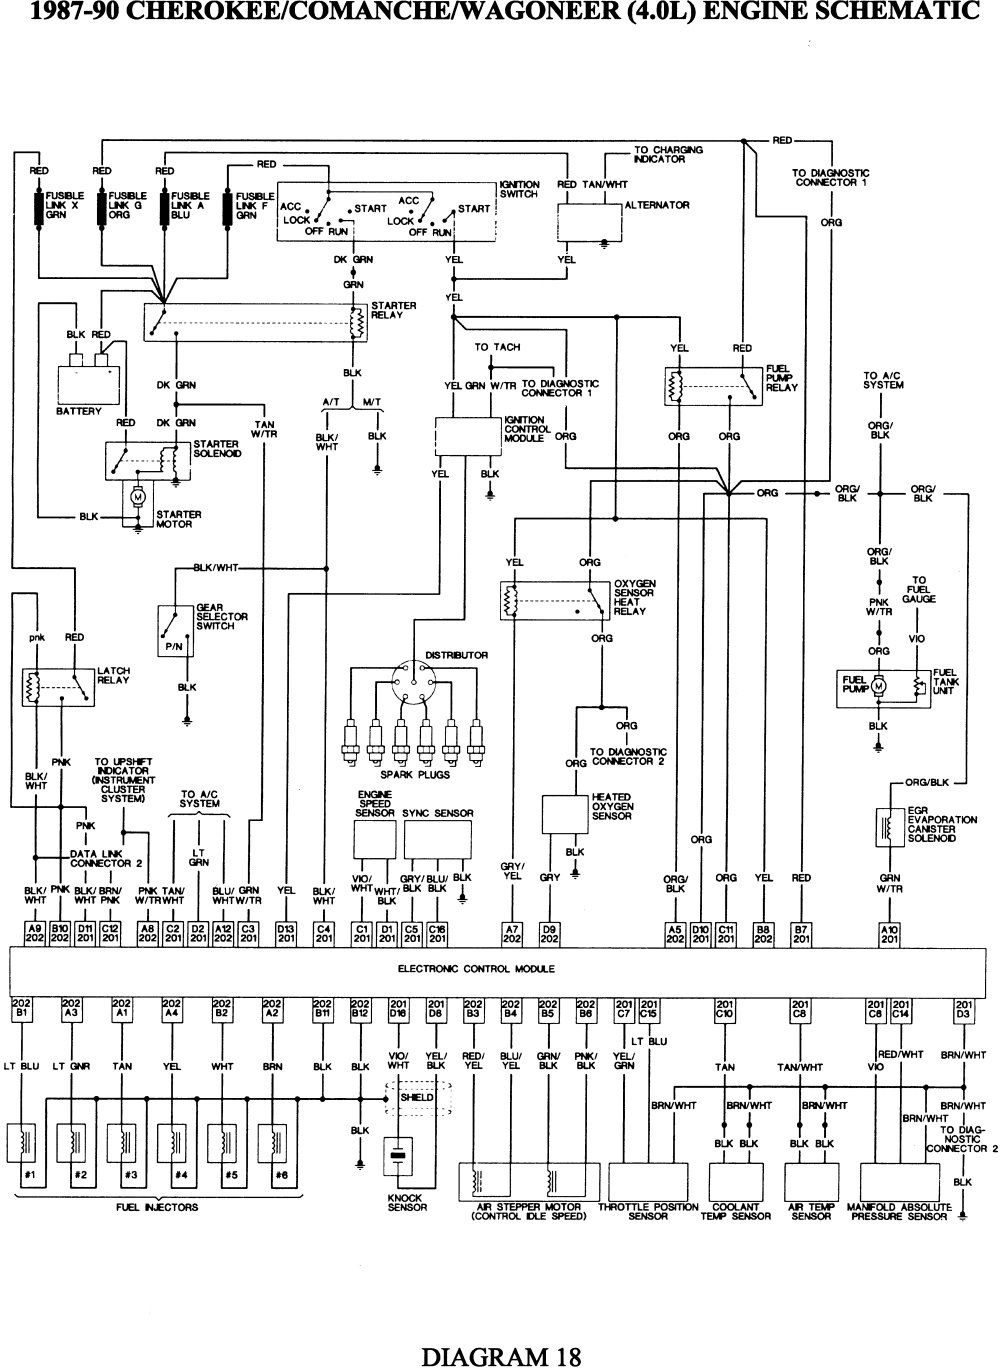 Stupendous 97 Jeep Cherokee Charging System Diagram Circuit Diagram Template Renstra Mohammedshrine Wiring Digital Resources Renstramohammedshrineorg